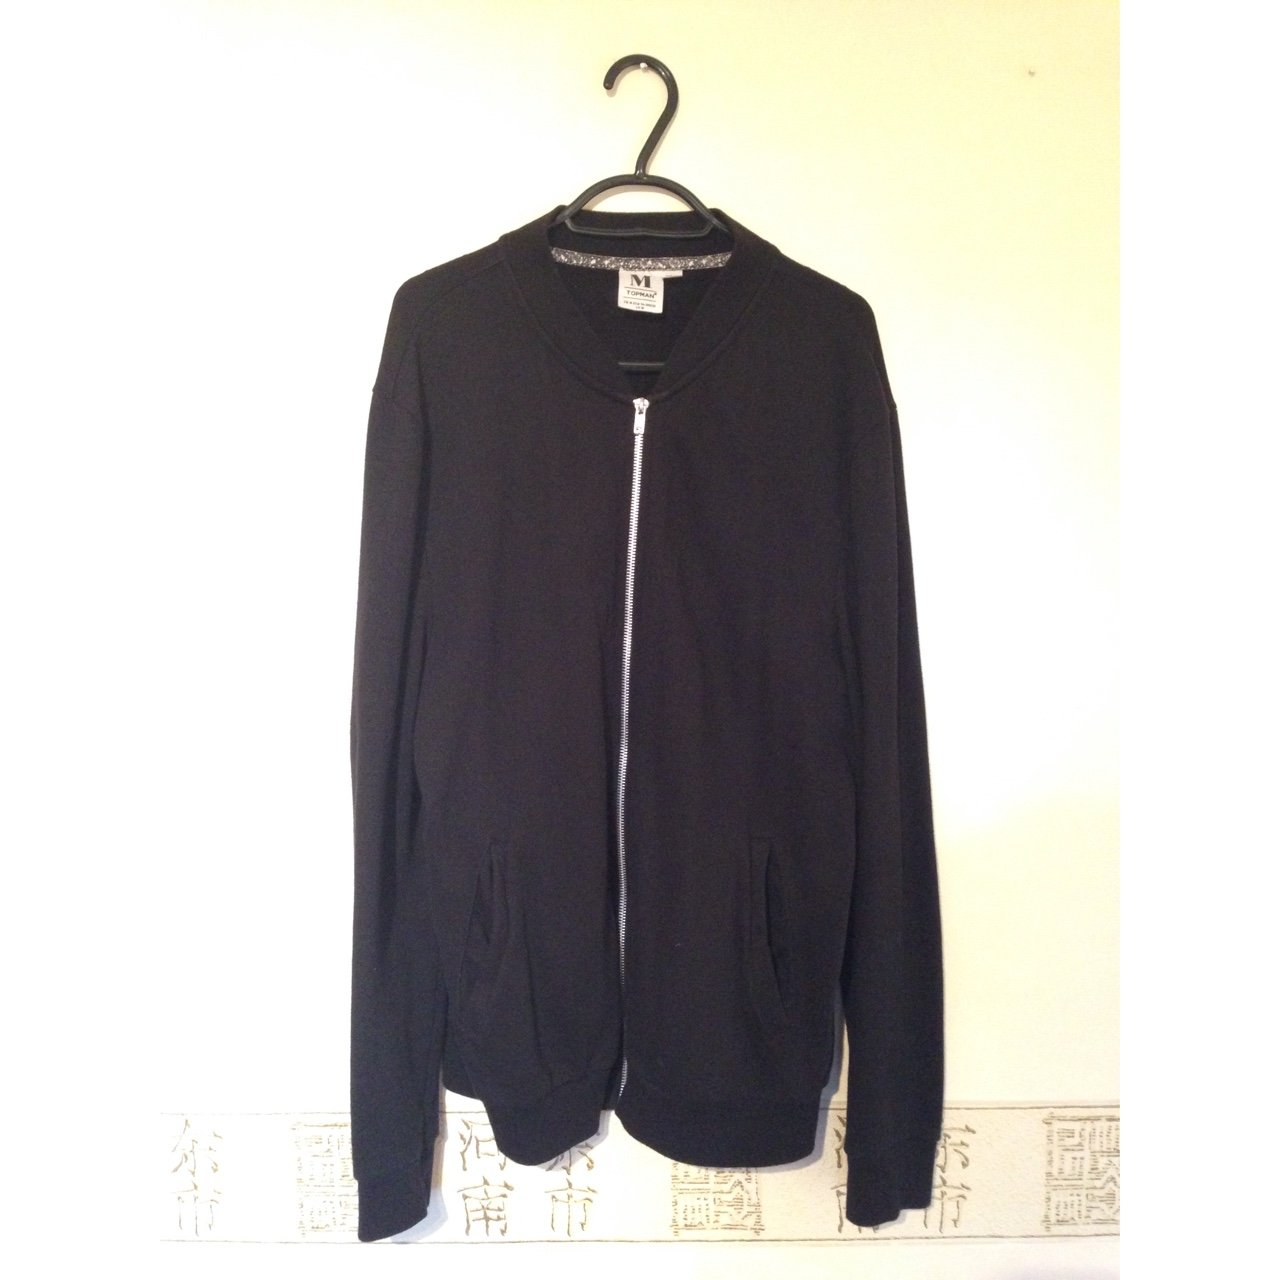 2362b4efd92c Topman Black Bomber Jacket - Size M. Made from a soft cotton - Depop